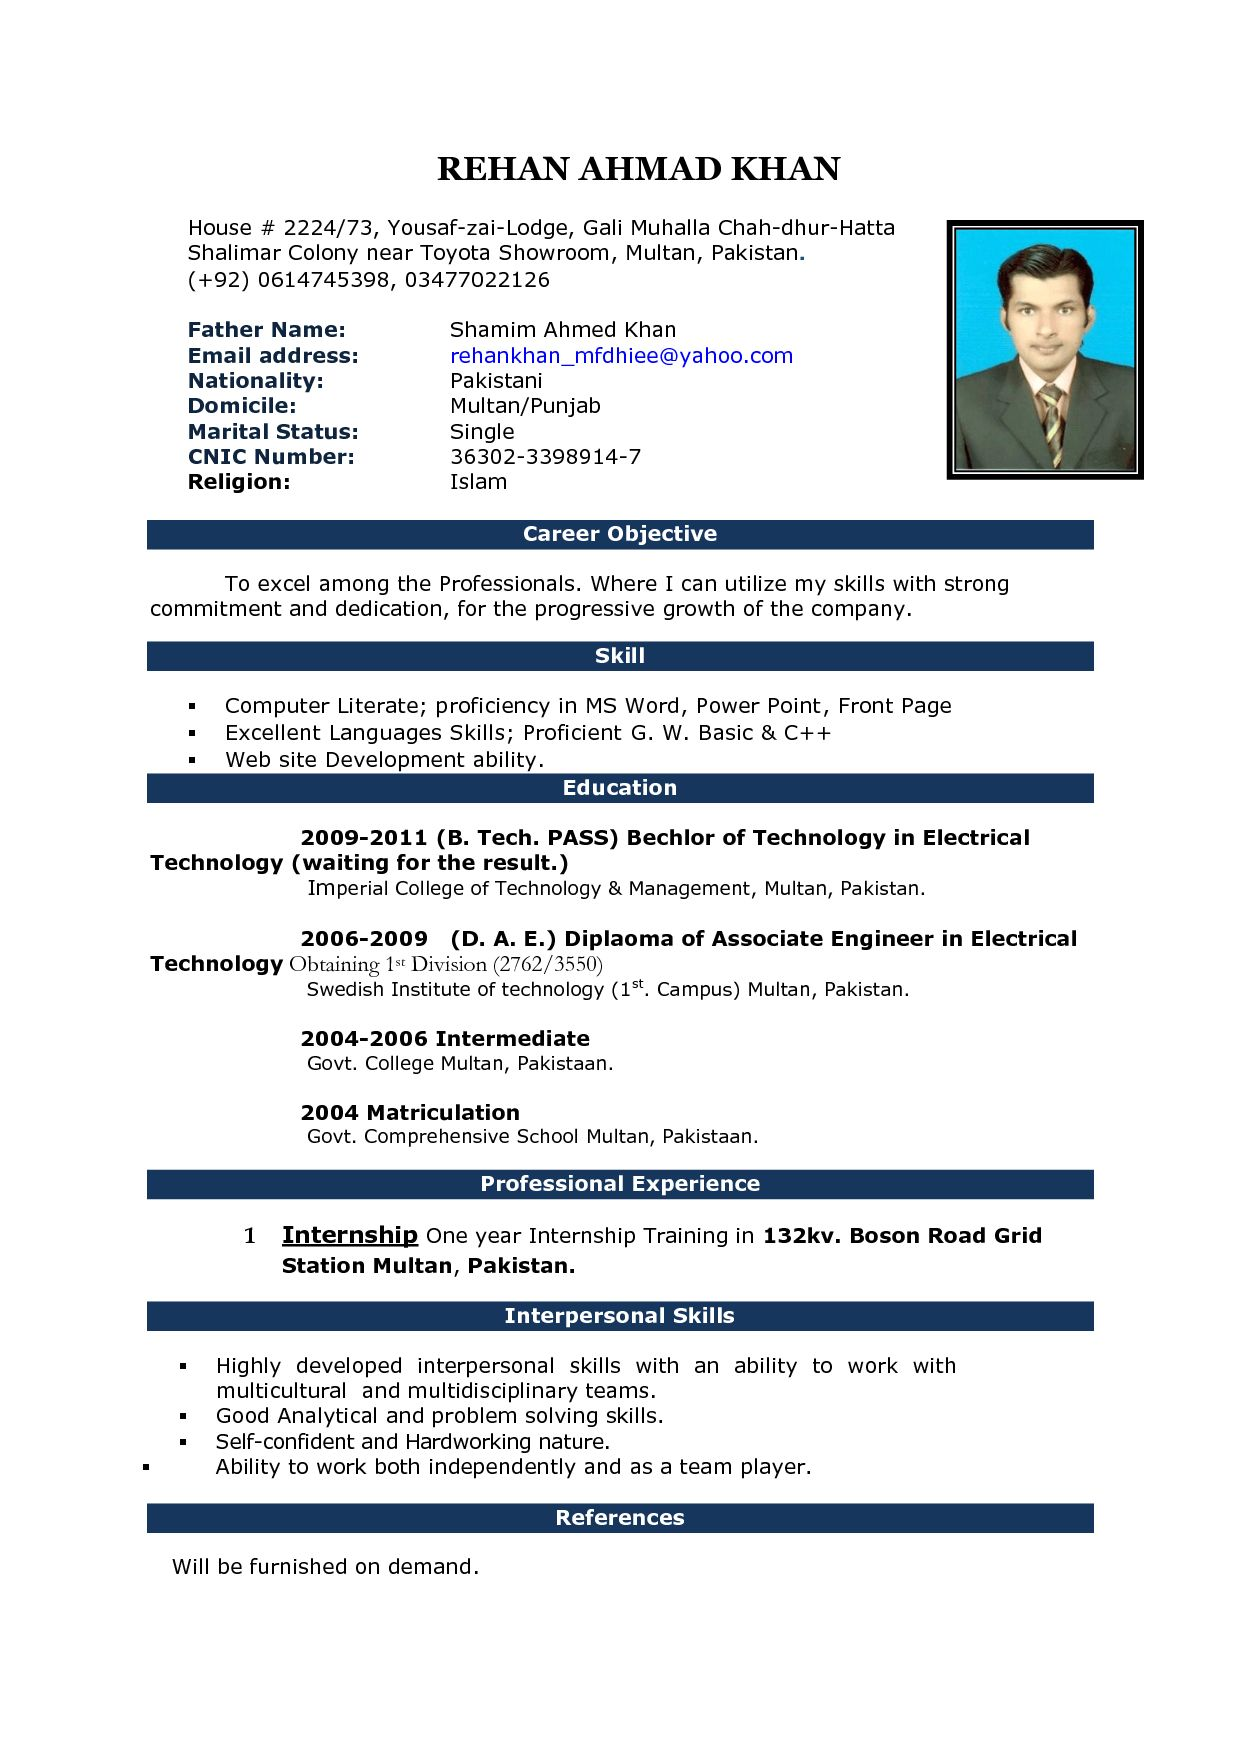 pin on cv professional resume template microsoft word email content sample medecin malgre Resume Download Professional Resume Template Microsoft Word